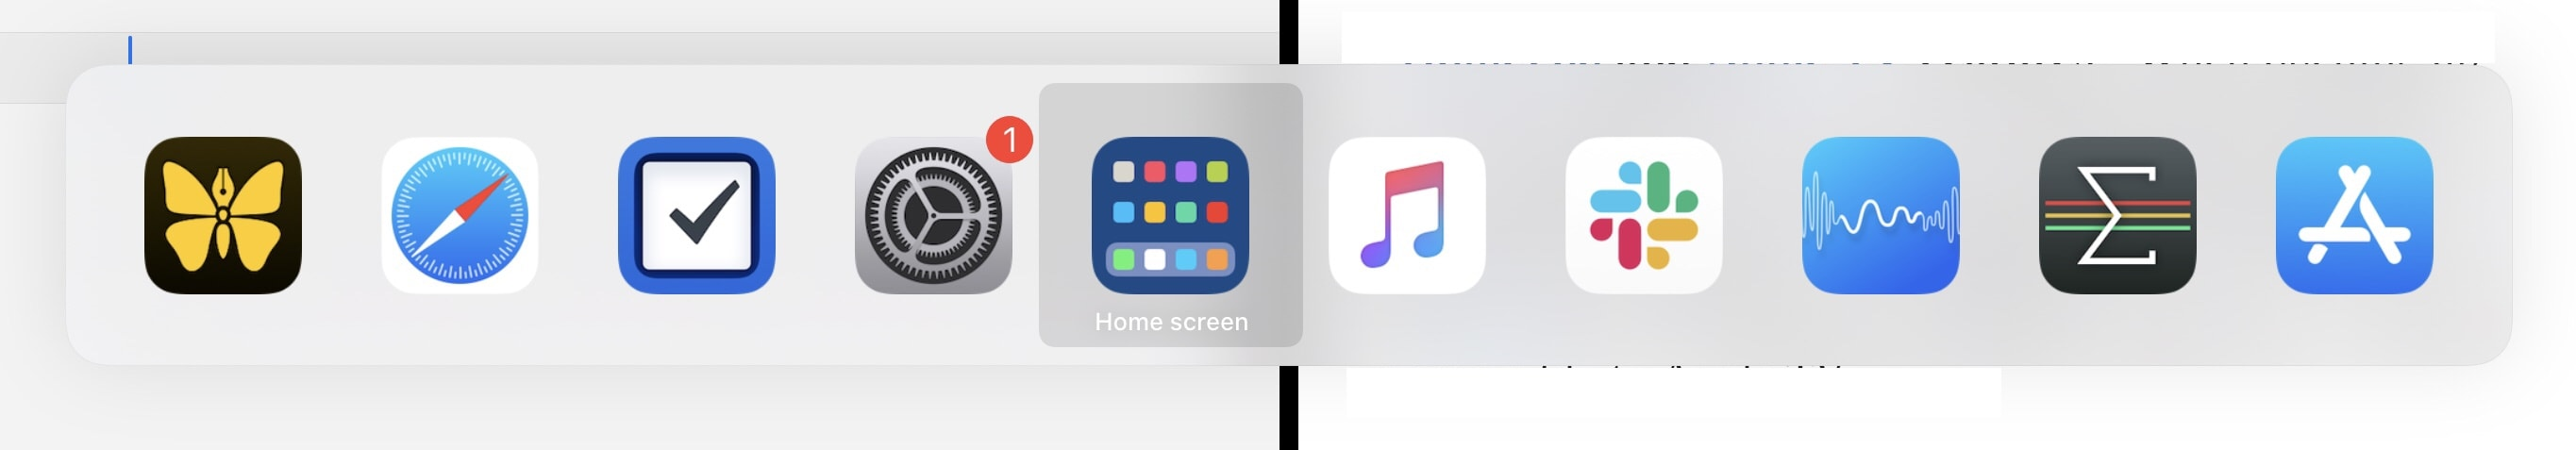 New home-screen icon in the app switcher.